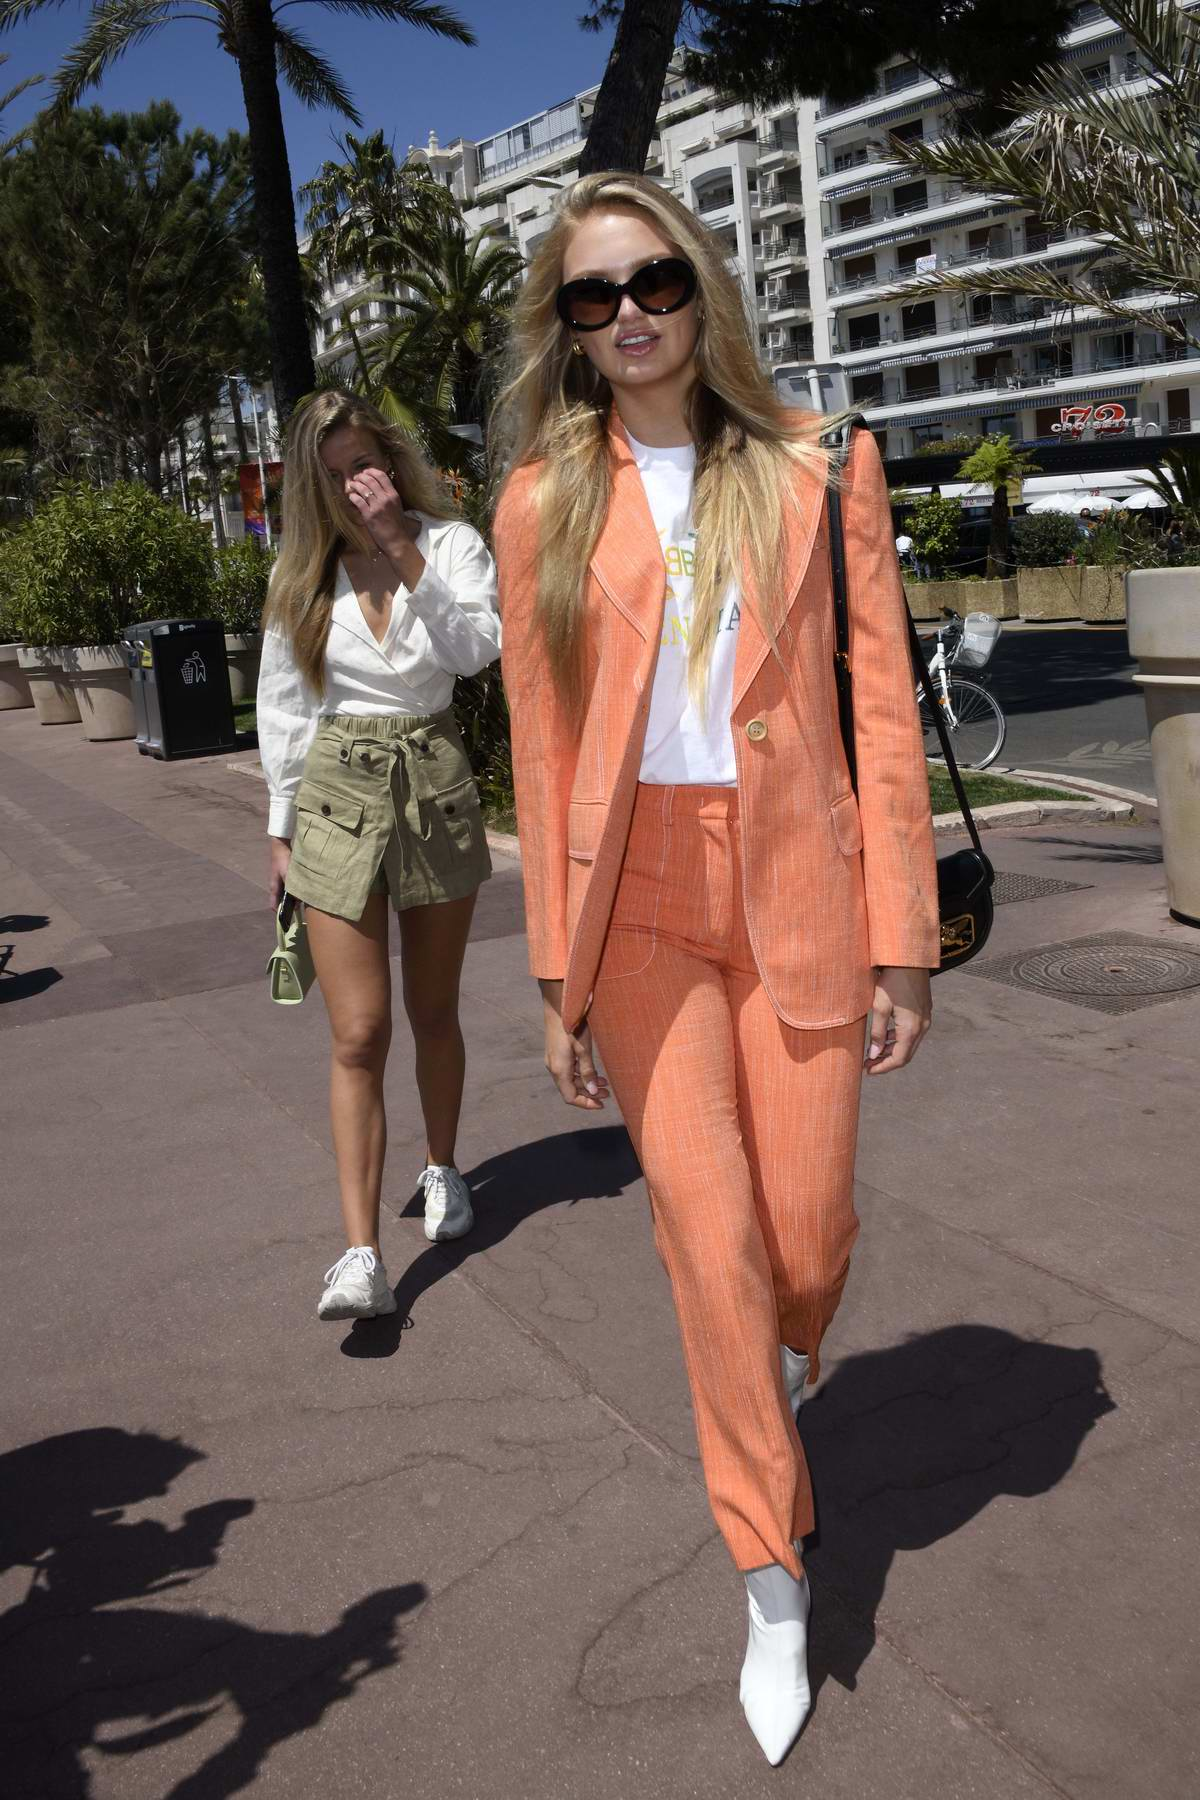 Romee Strijd steps out wearing an orange suit on the Croisette during the 72nd Cannes Film Festival in Cannes, France